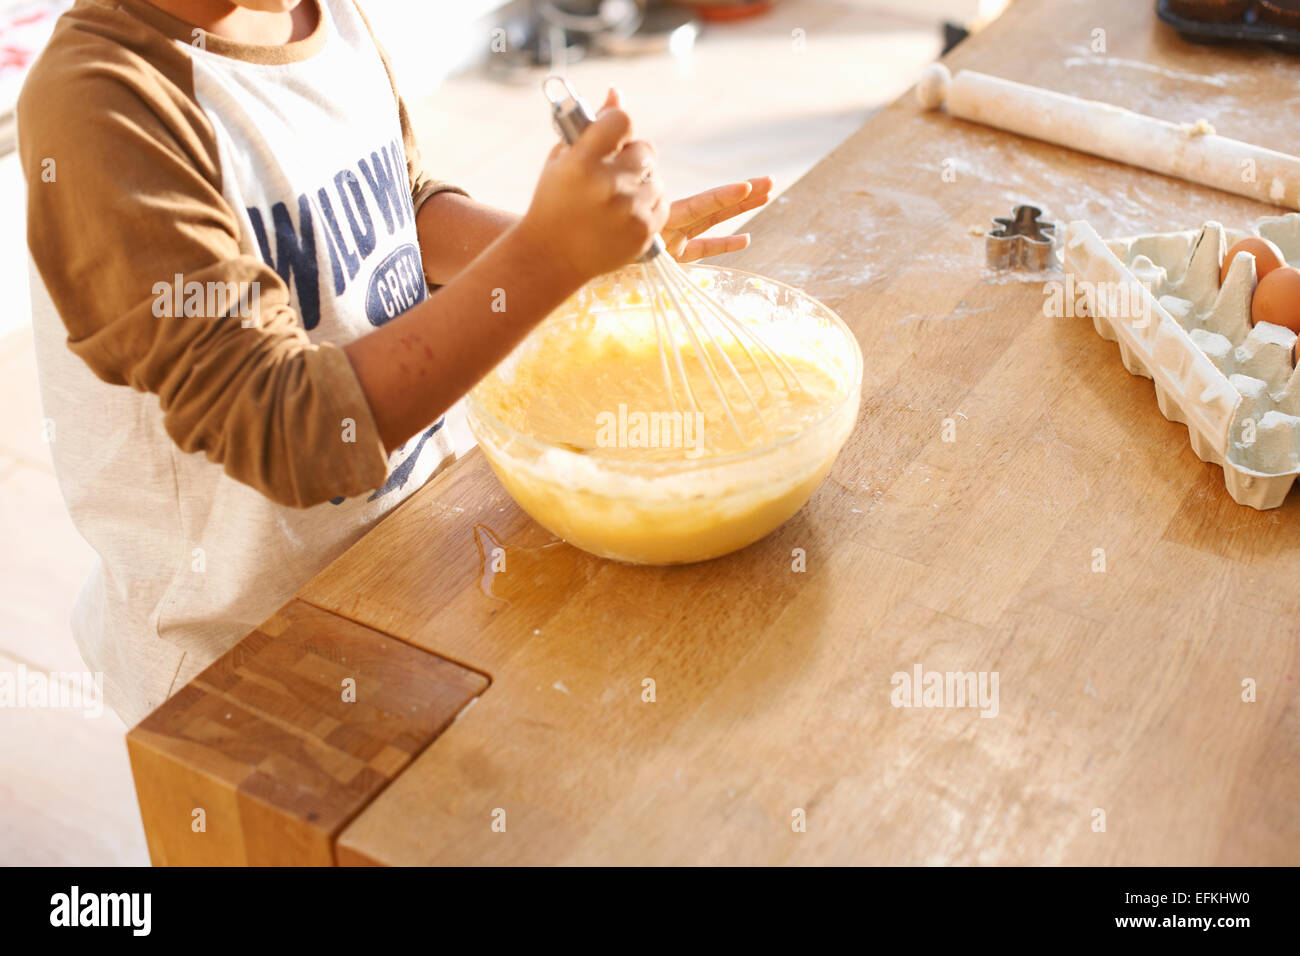 Boy beating mixture in bowl in kitchen - Stock Image